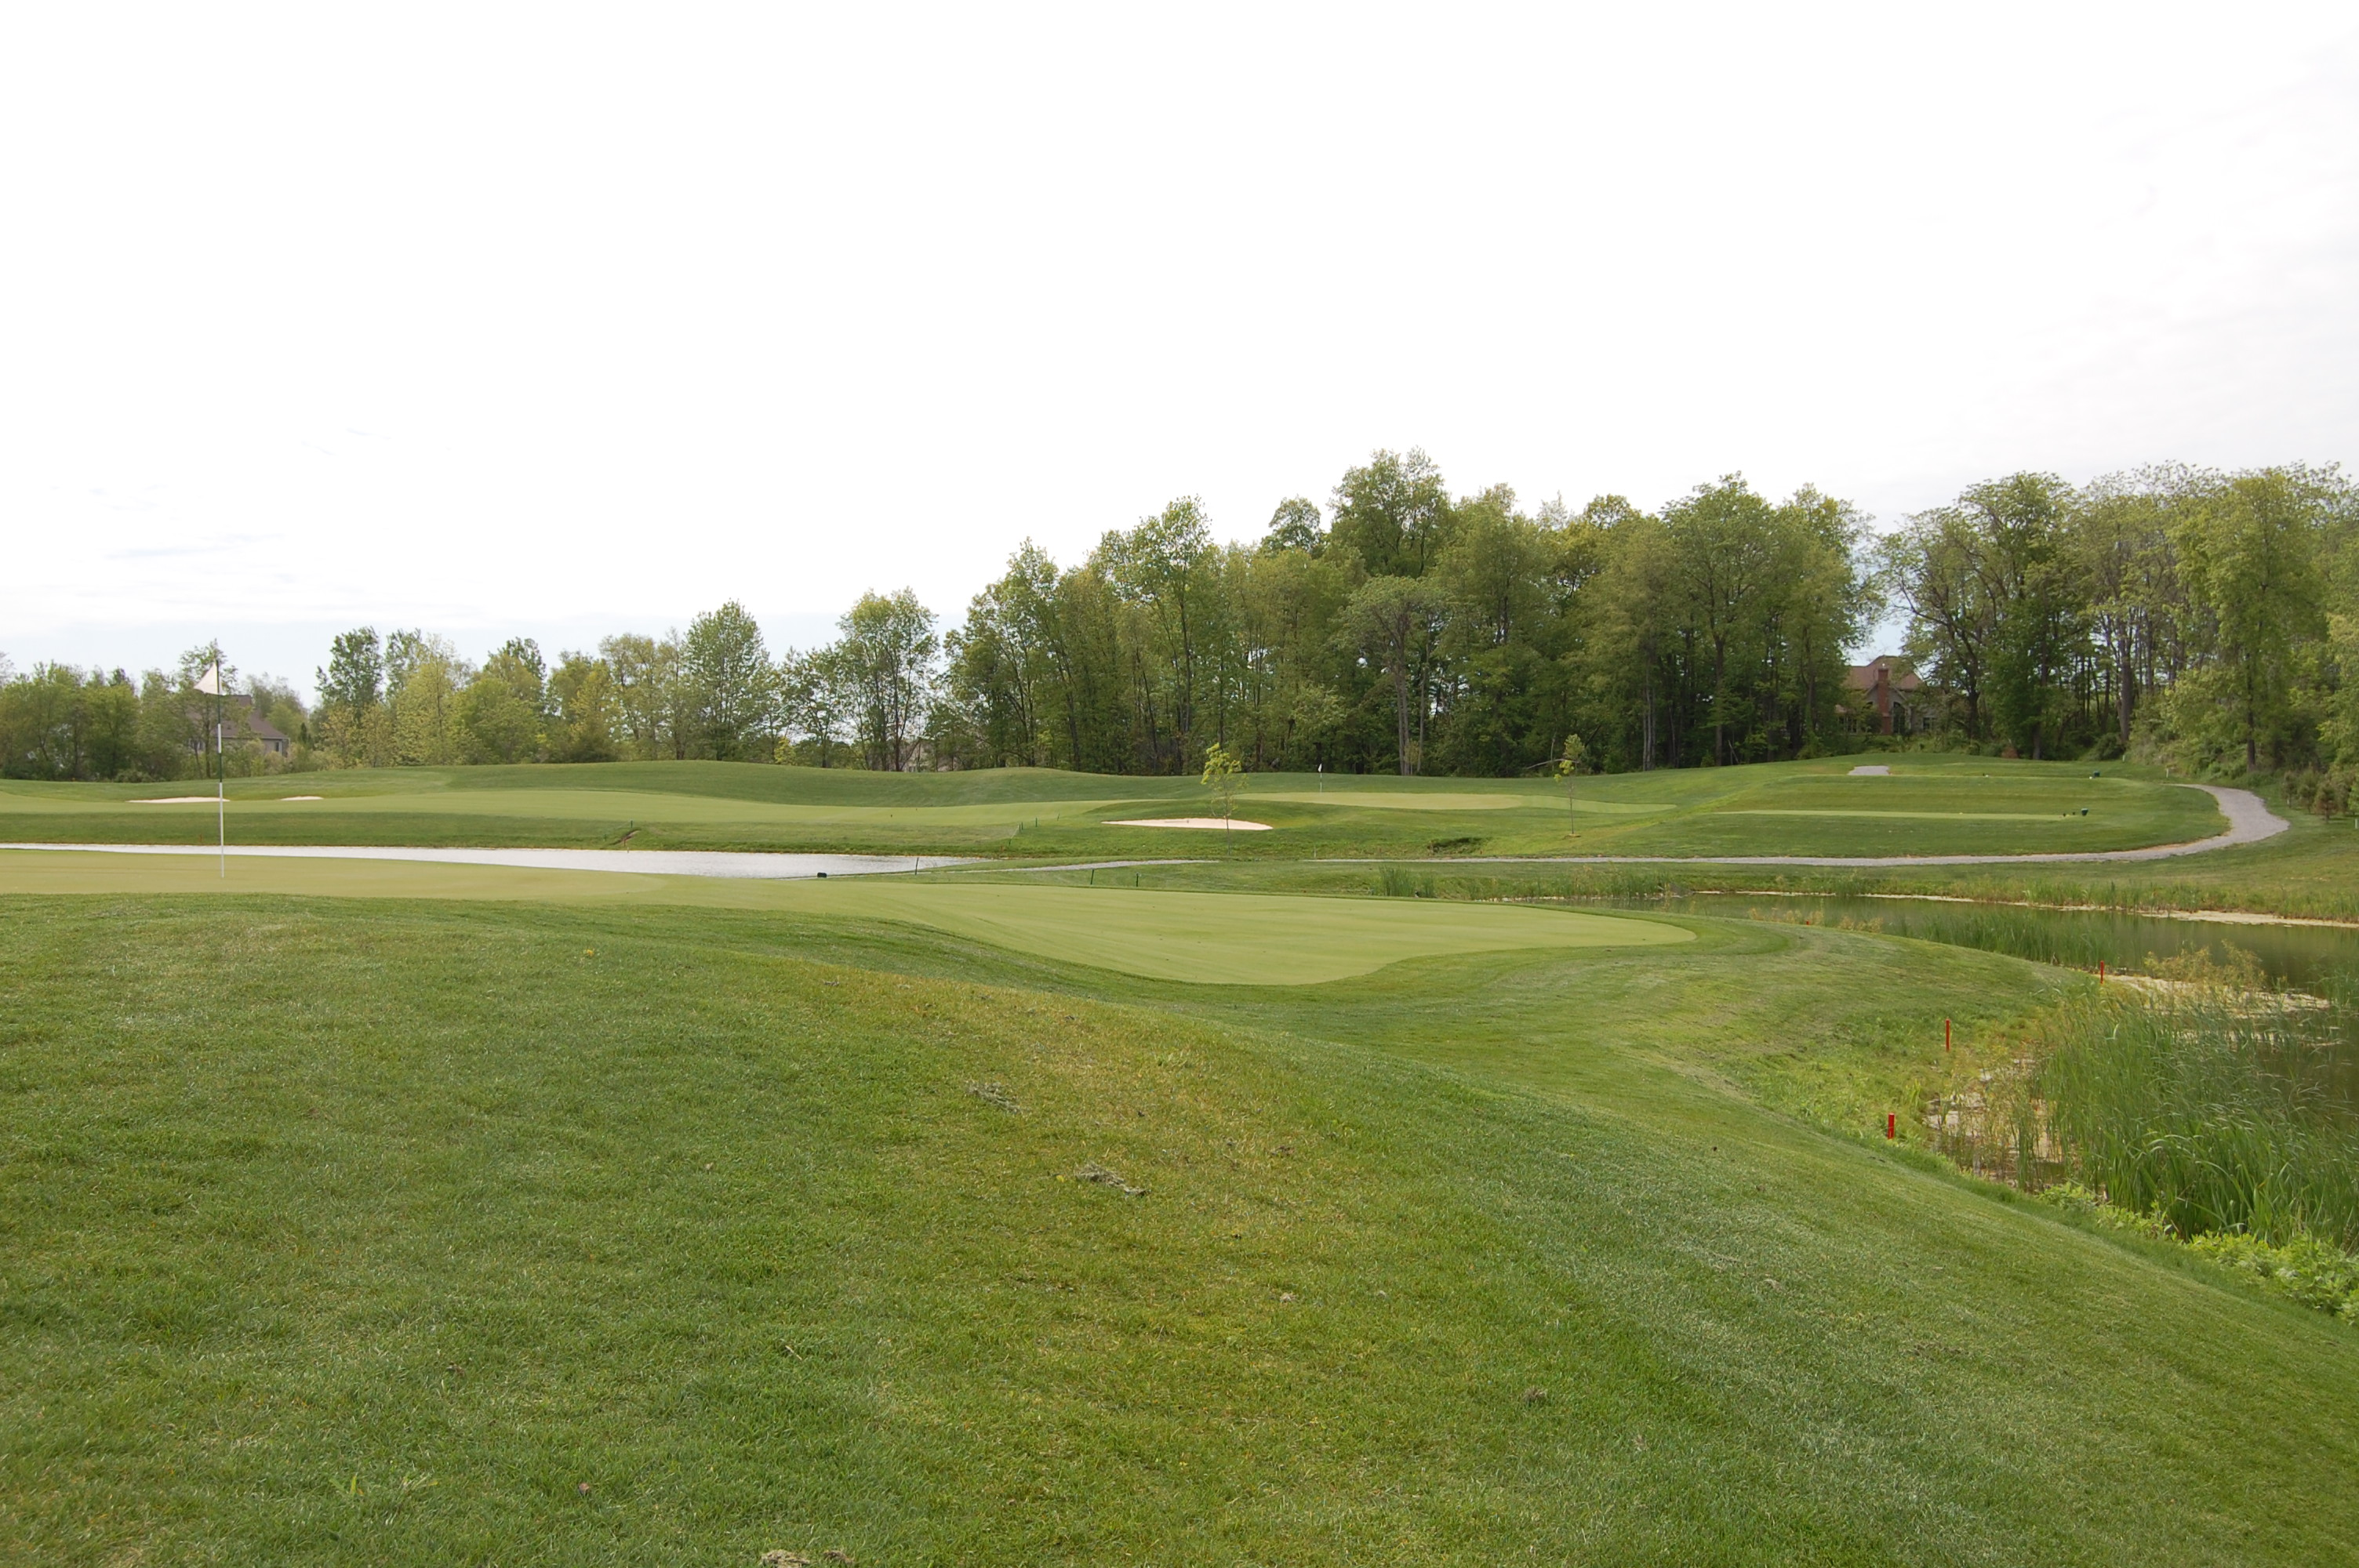 #2 Back of Green